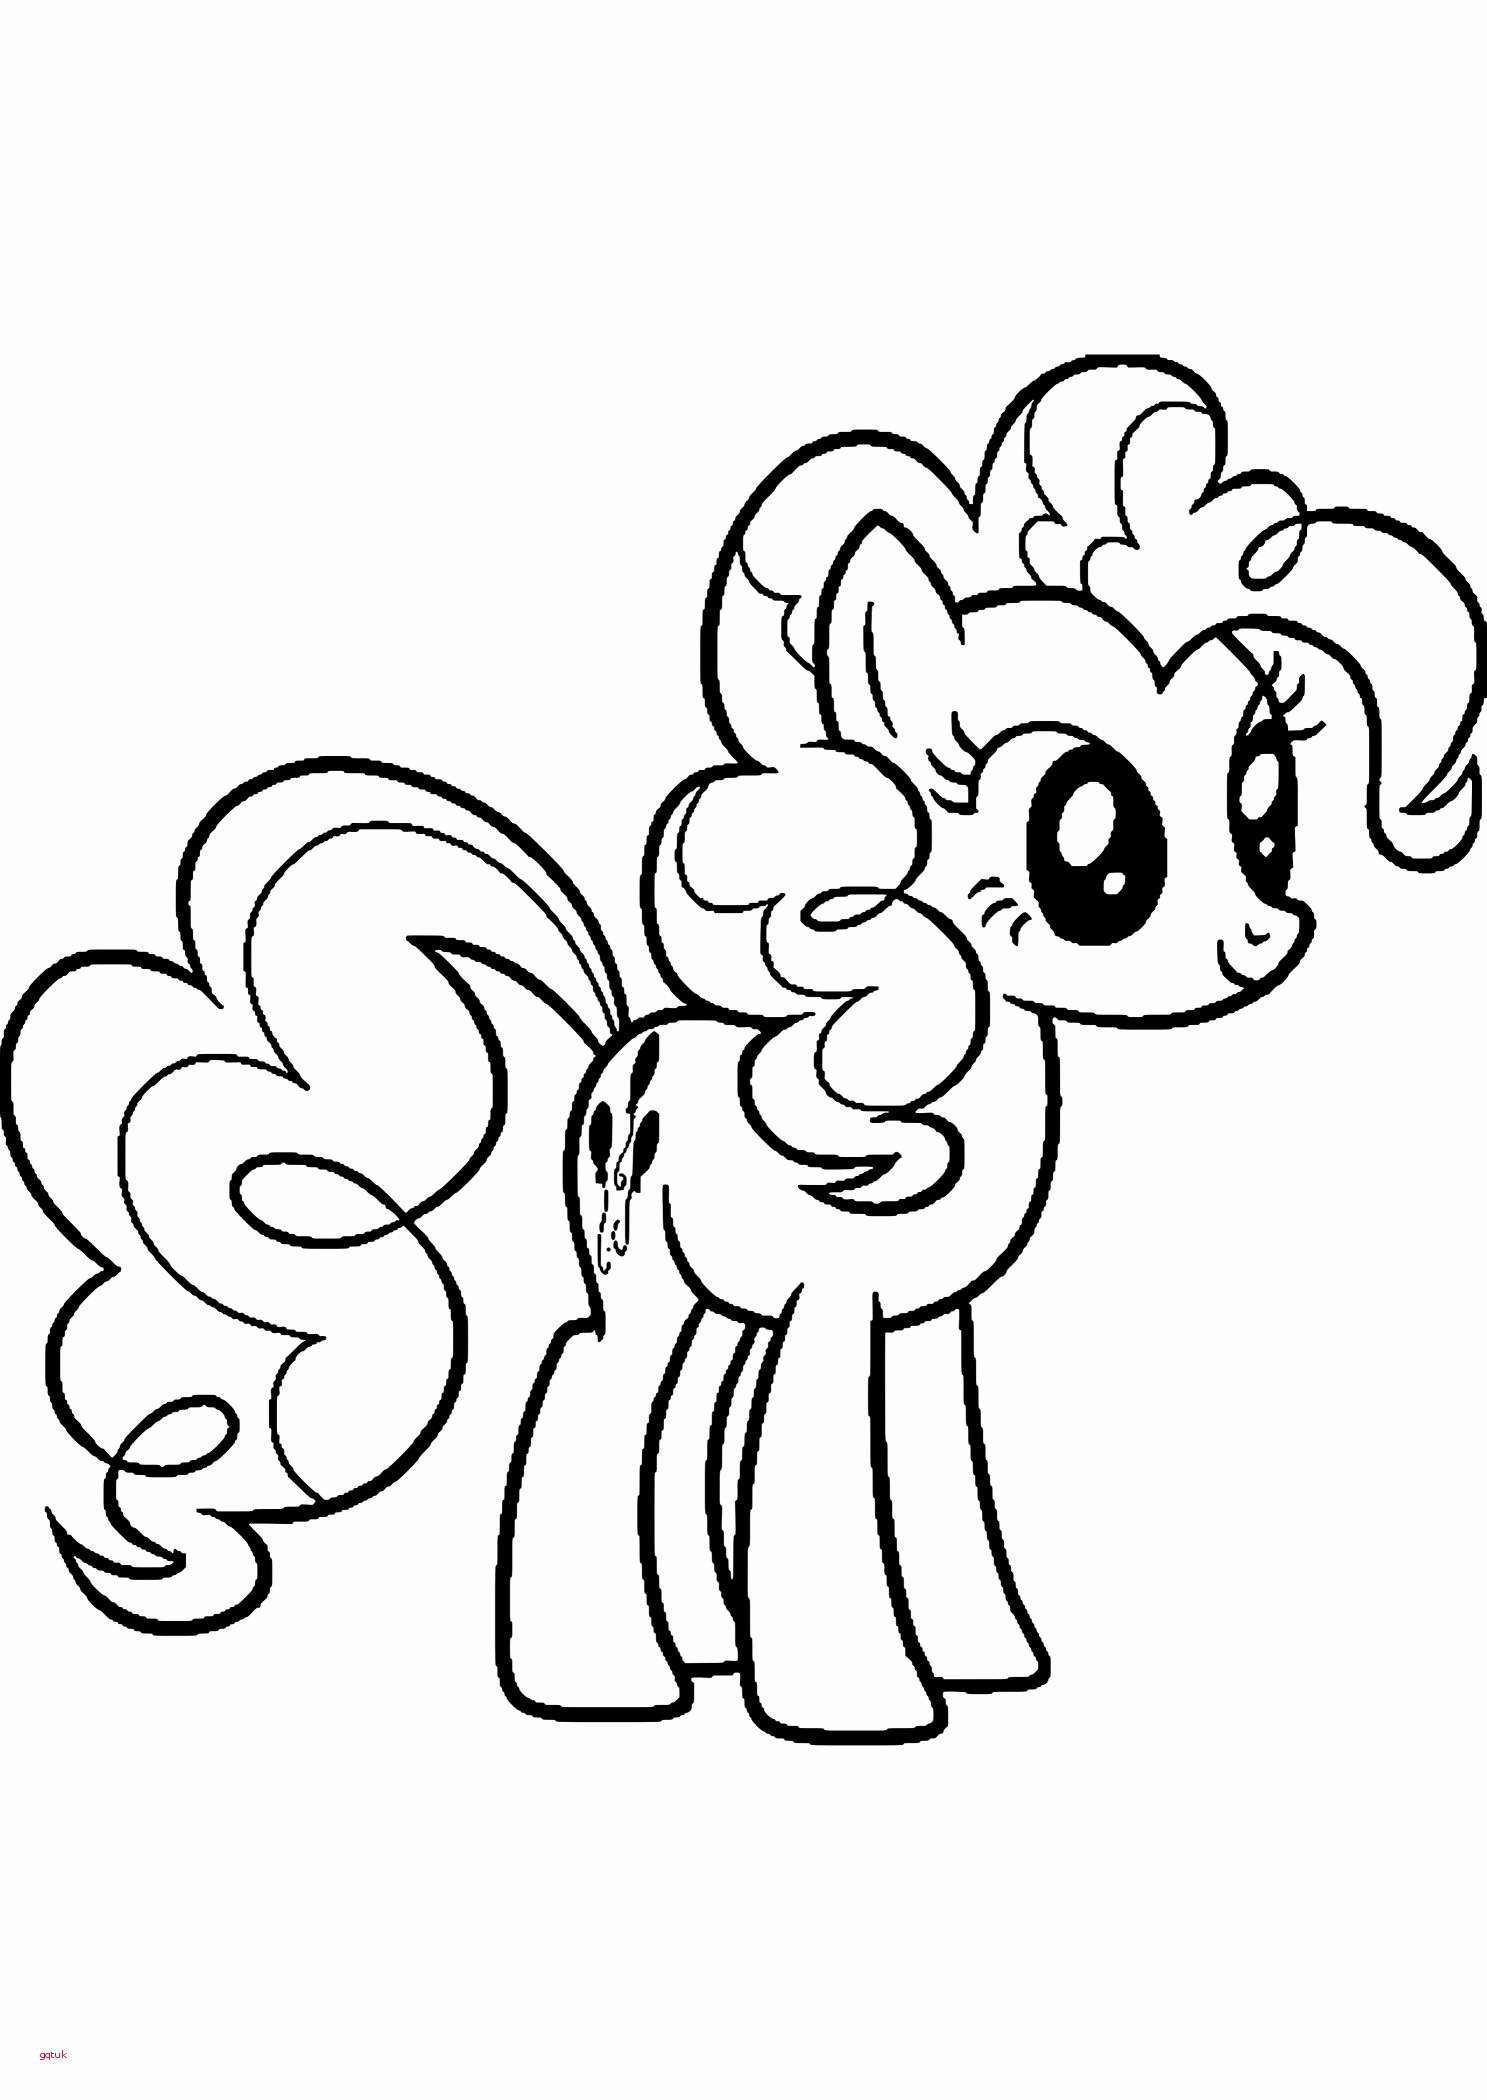 Ausmalbilder My Little Pony Equestria Girl Frisch Equestria Girls Pinkie Pie Coloring Pages Free Ausmalbilder My Sammlung